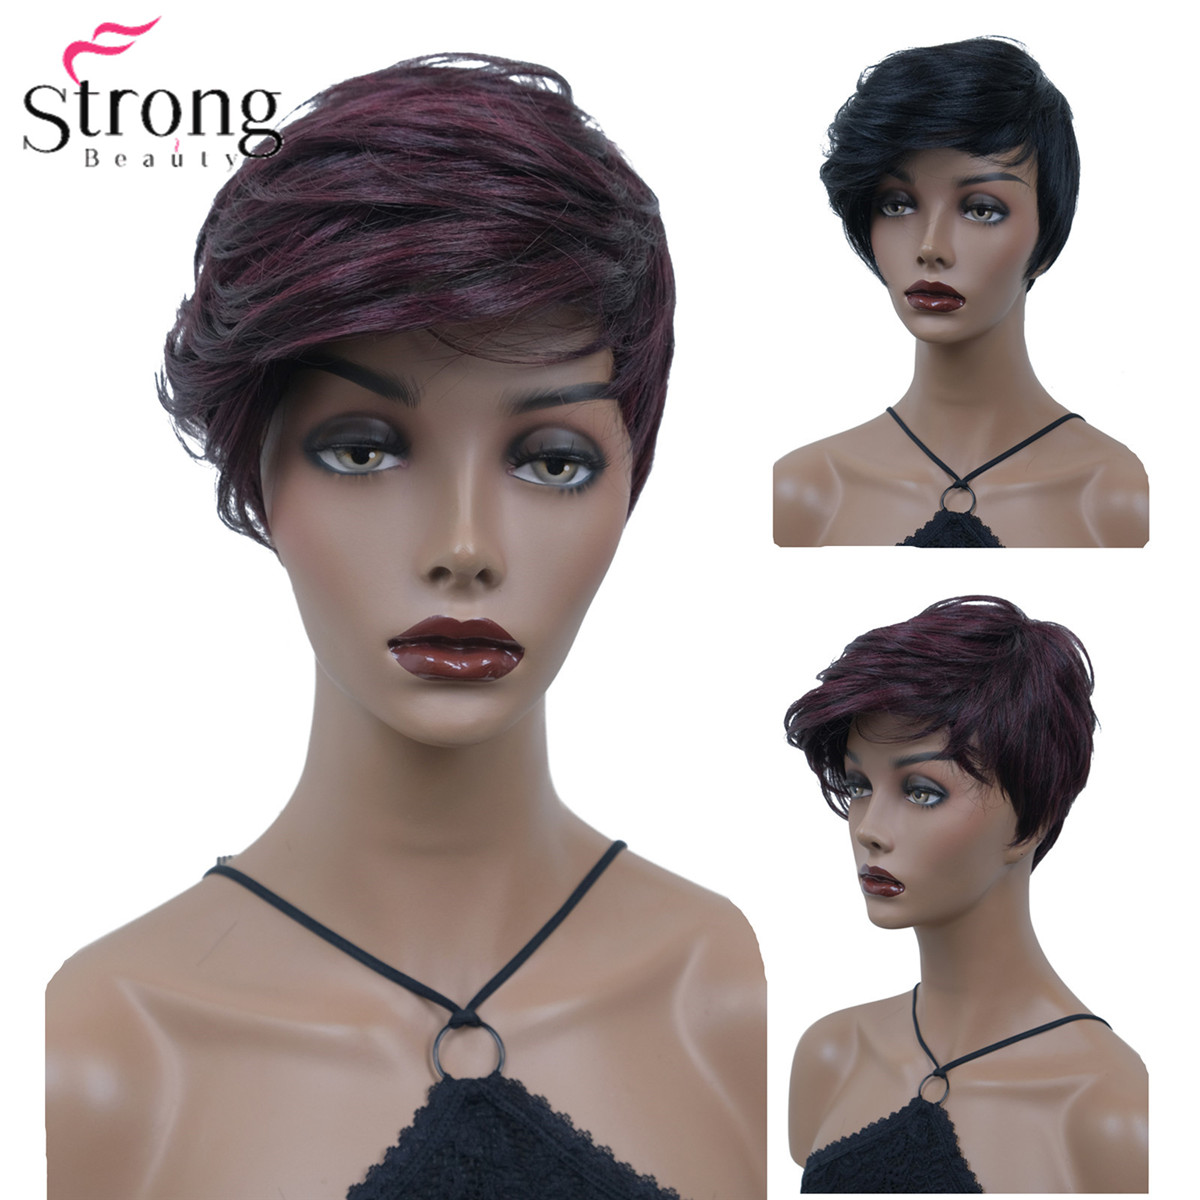 StrongBeauty Women's Short Wig Straight Hair Synthetic Black/Wine Red Natural Wigs Bob